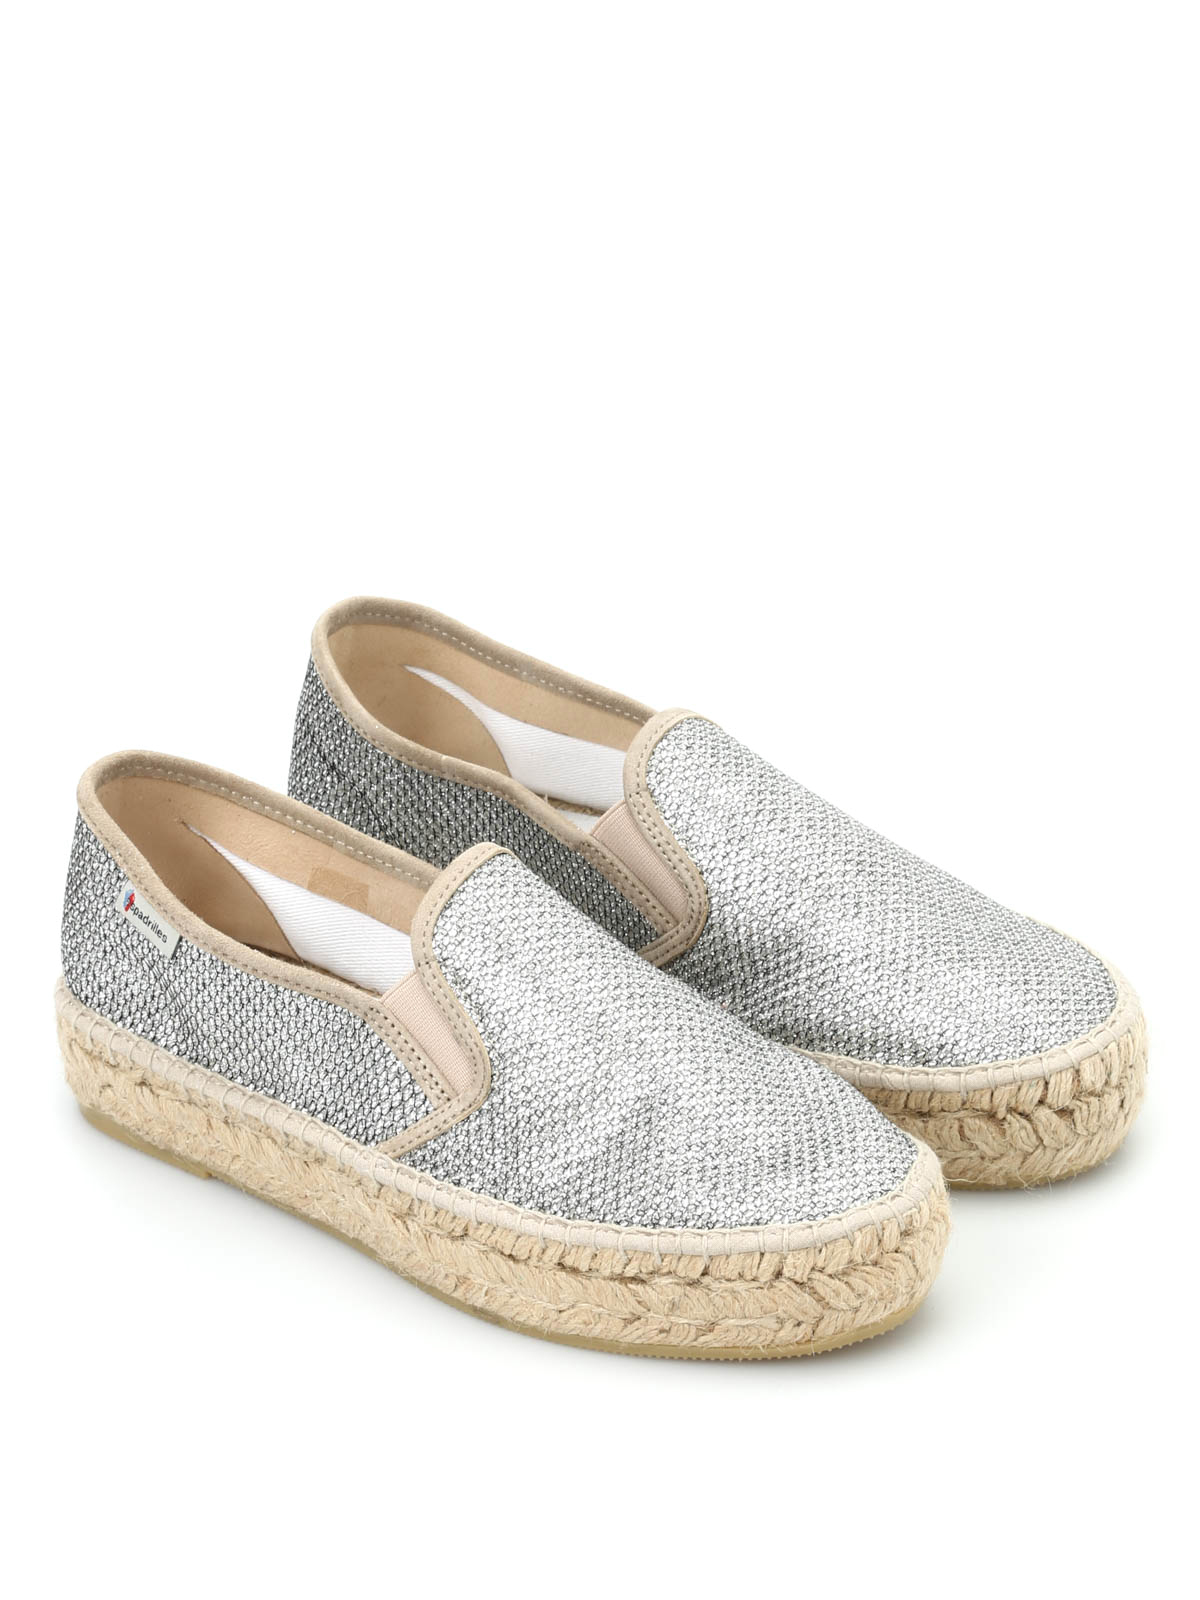 SHOPBOP - Espadrilles FASTEST FREE SHIPPING WORLDWIDE on Espadrilles & FREE EASY RETURNS.